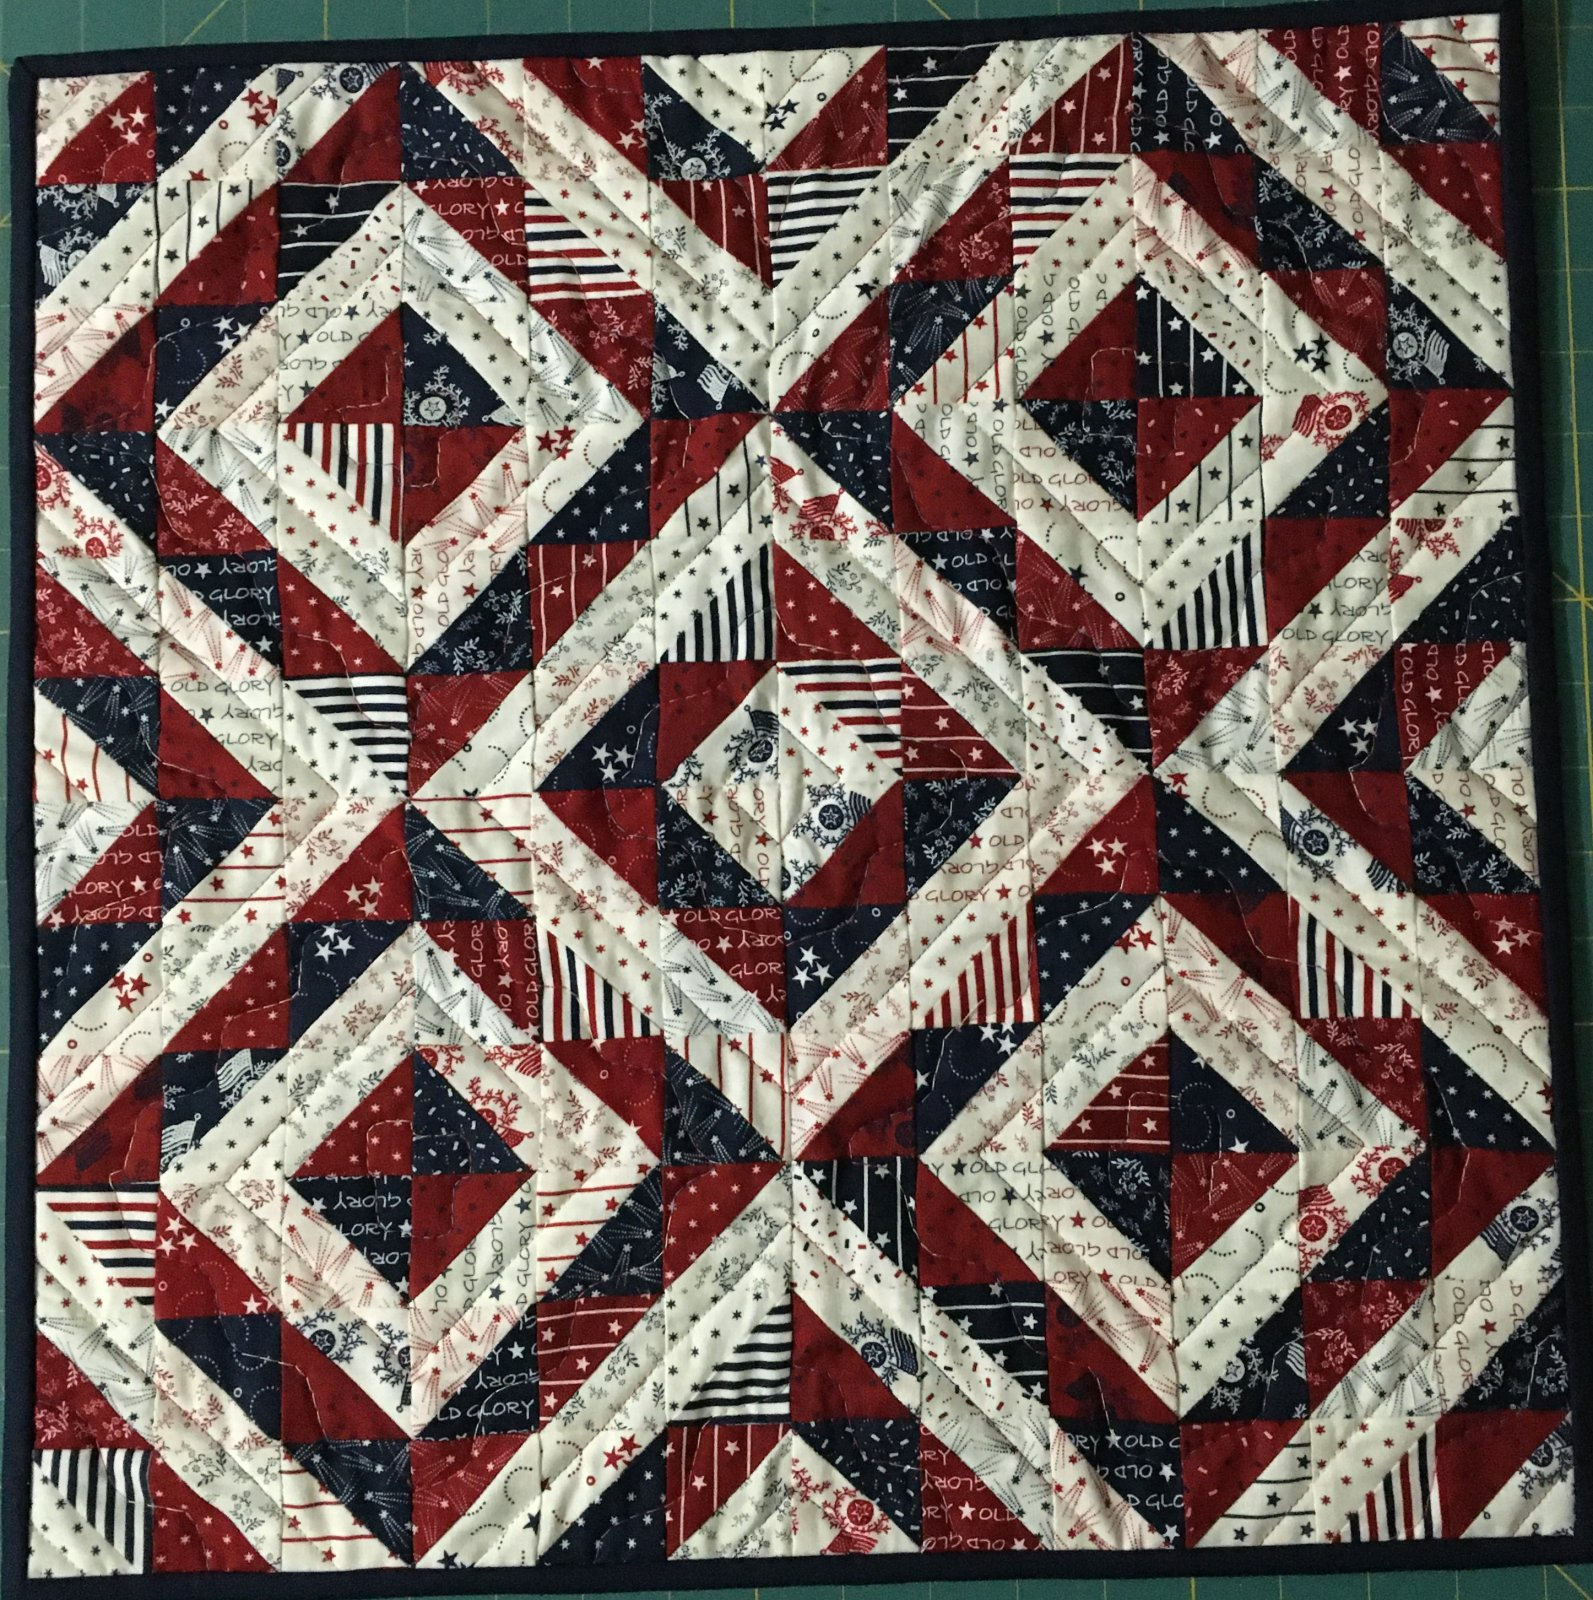 American Beauty 18-1/2 square or 9-1/2 x 36-1/2